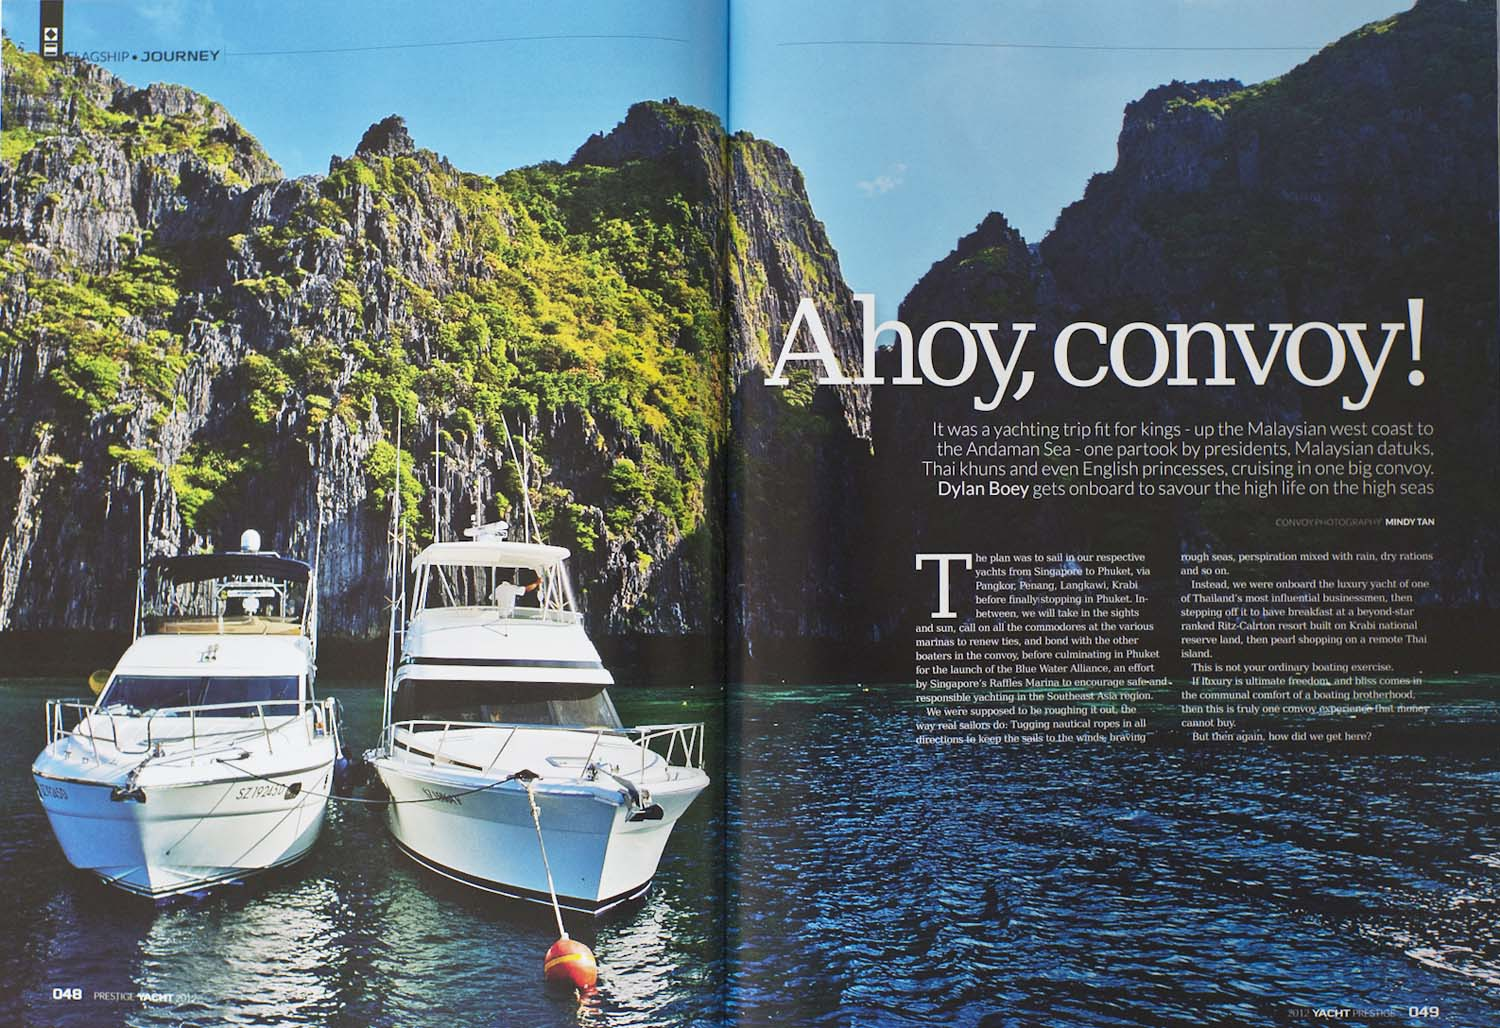 PRESTIGE-Yacht-Magazine Editorial | MINDY TAN PHOTOGRAPHY Singapore Lifestyle Travel Portrait Documentary Photographer Writer